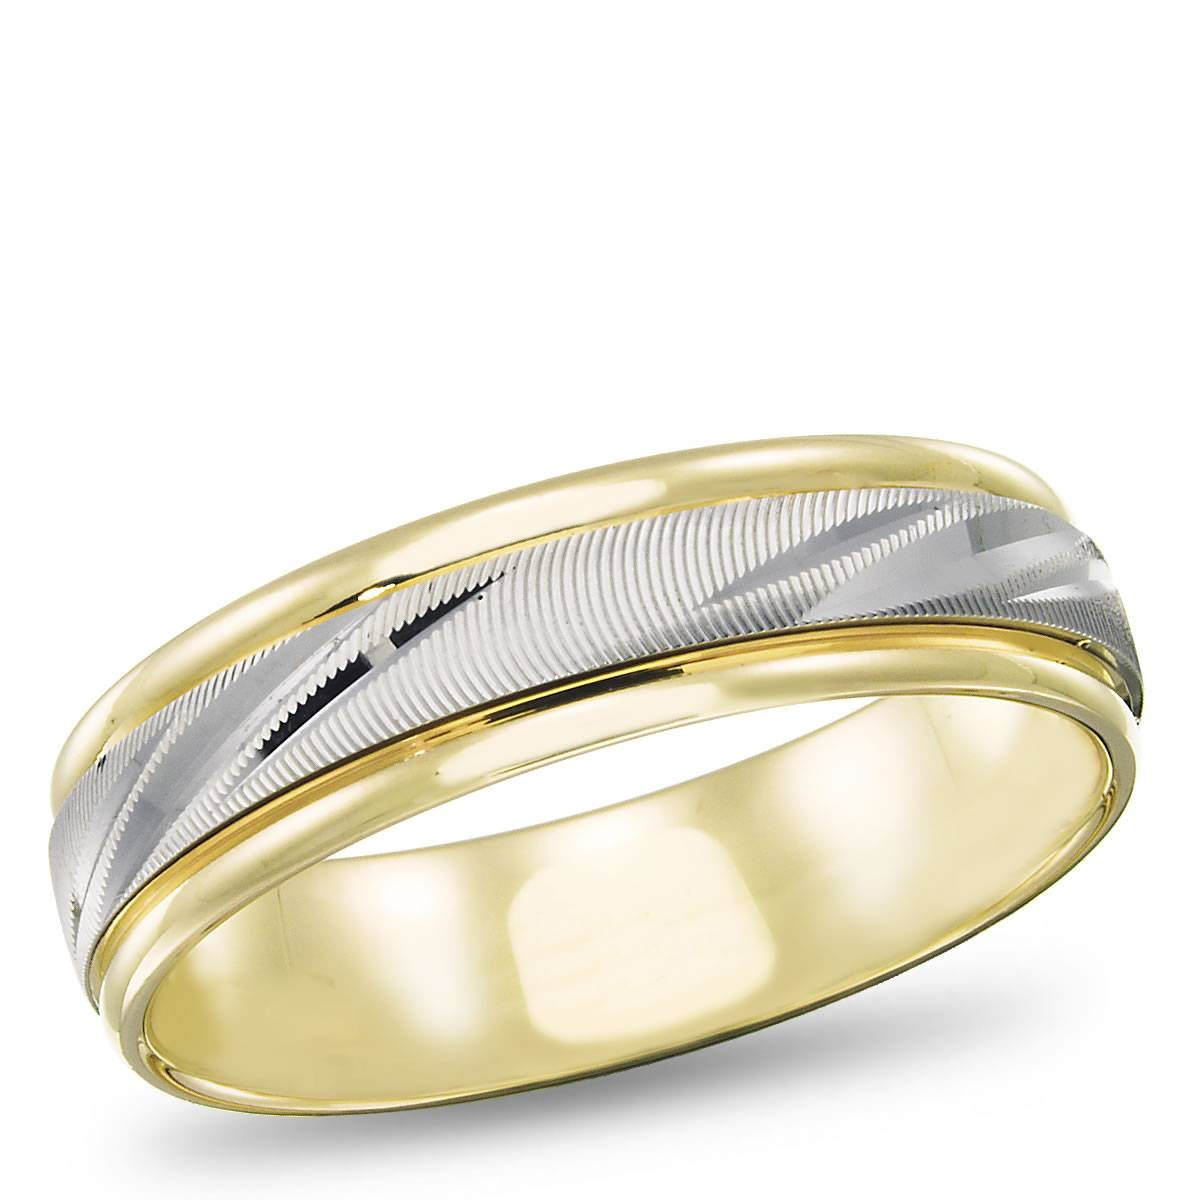 14K Two Tone Gold 5.5Mm Men's Wedding Band | Samuels Jewelers Throughout Two Tone Wedding Bands For Him (Gallery 6 of 15)